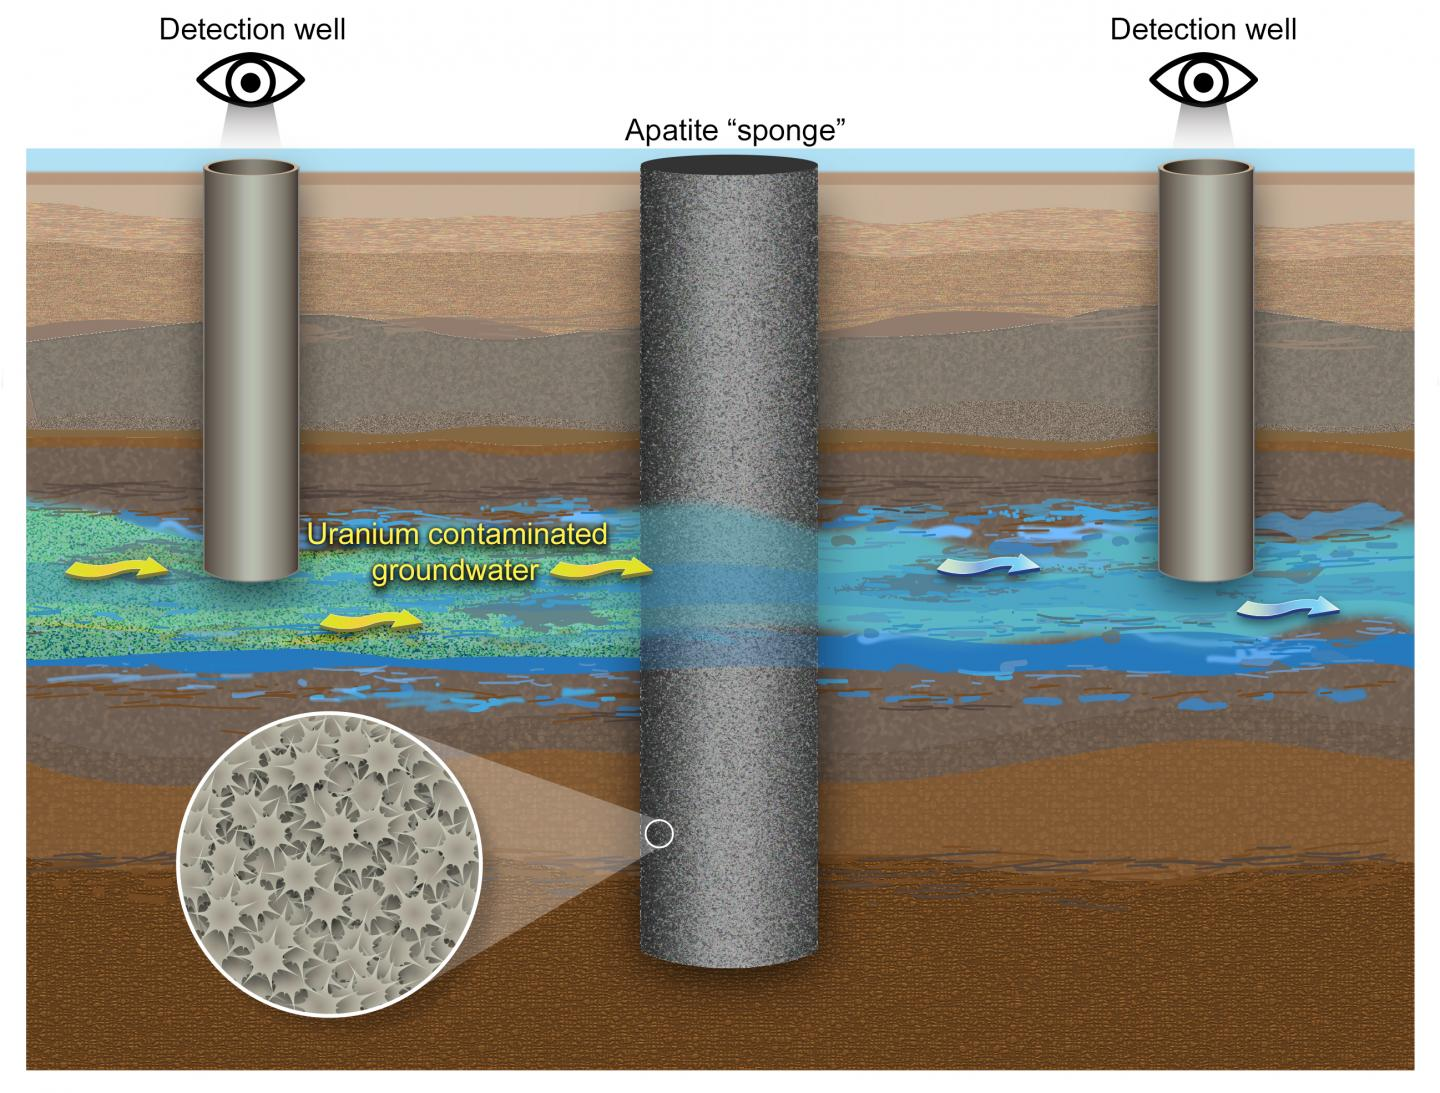 Apatite remediation technology captures uranium from groundwater